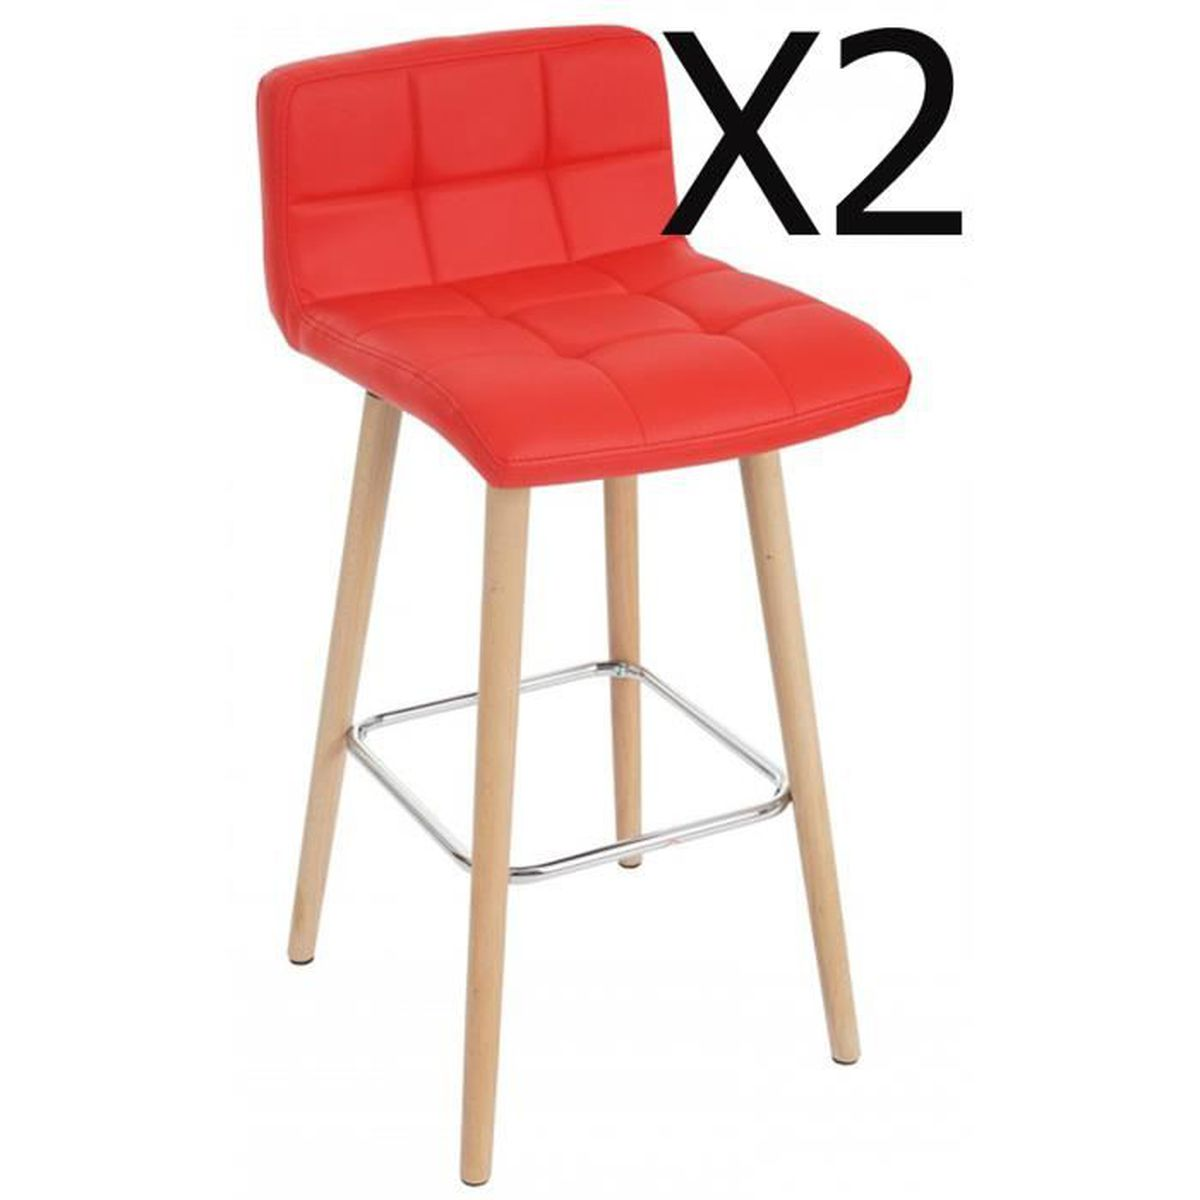 lot de 2 tabourets de bureau en simili cuir coloris rouge dim h 94 x l 48 x p 42 cm achat. Black Bedroom Furniture Sets. Home Design Ideas